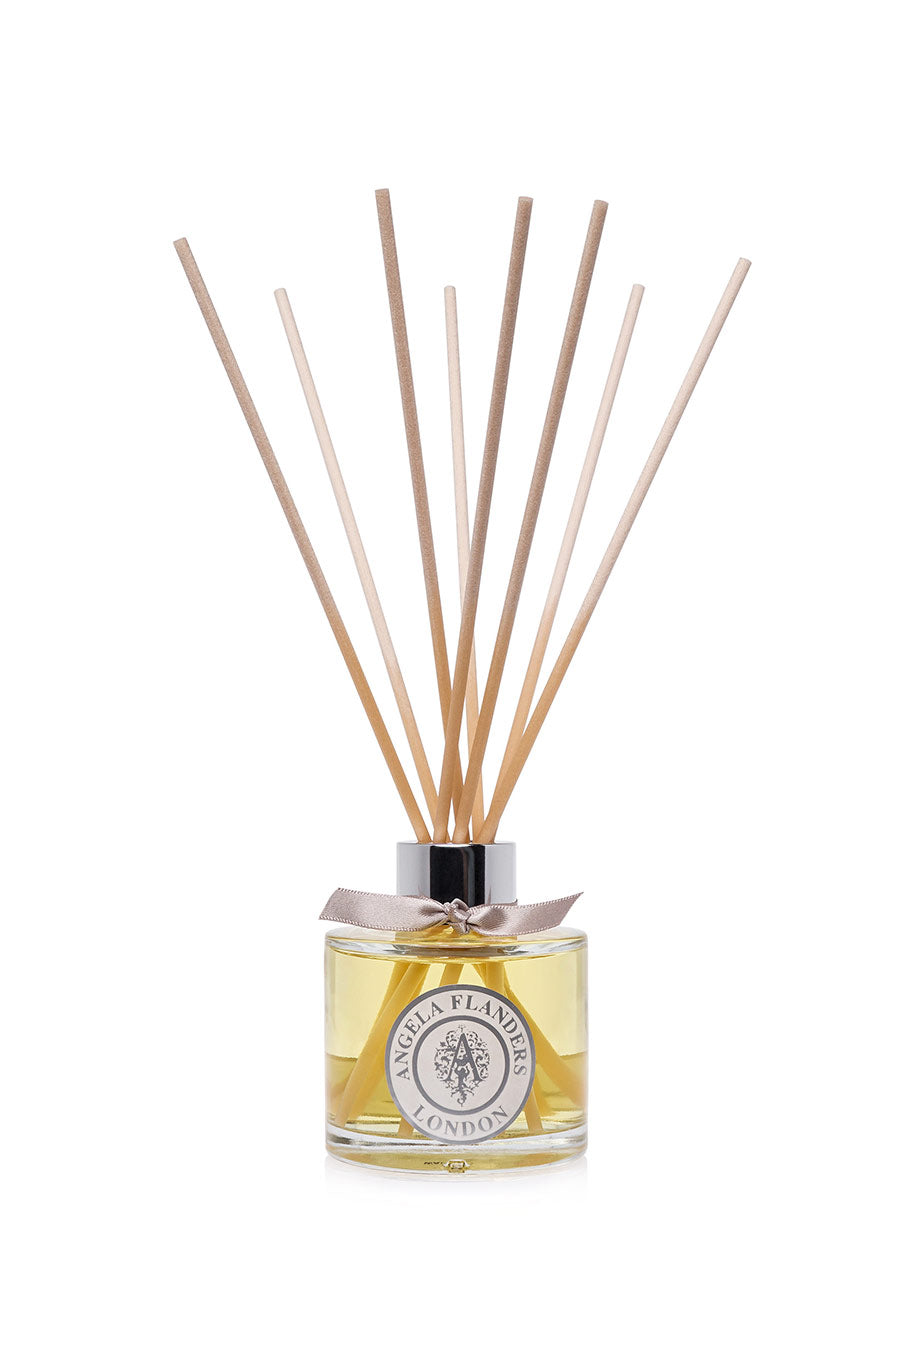 Angela Flanders White Lilac Reed Diffuser